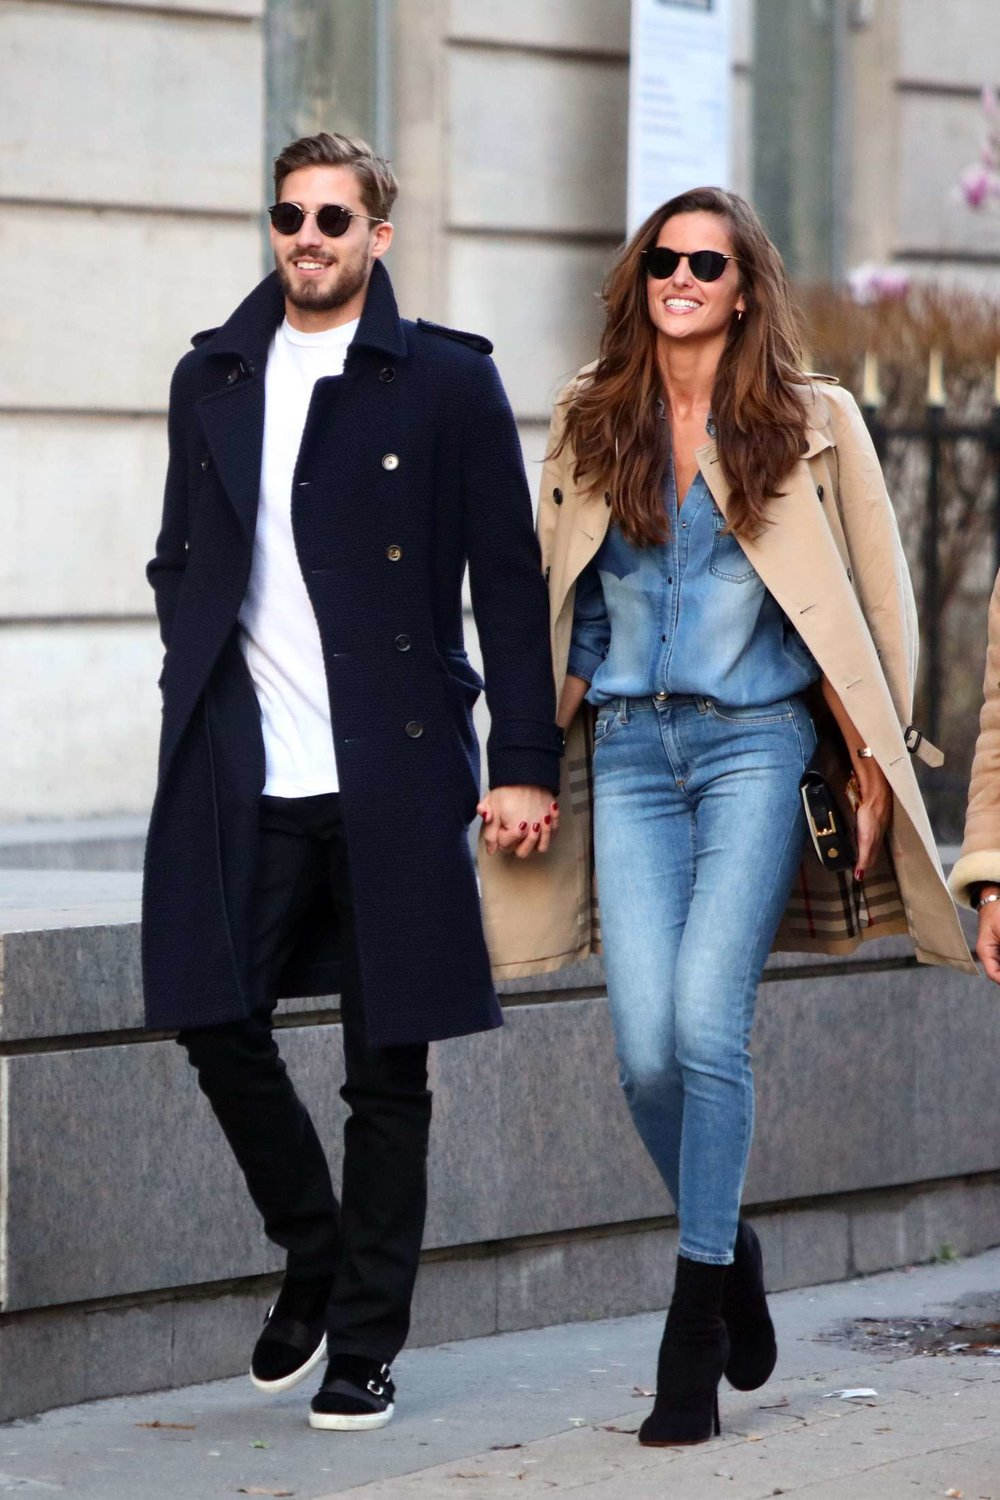 Izabel-Goulart-and-Kevin-Trapp-out-in-Paris--02.jpg